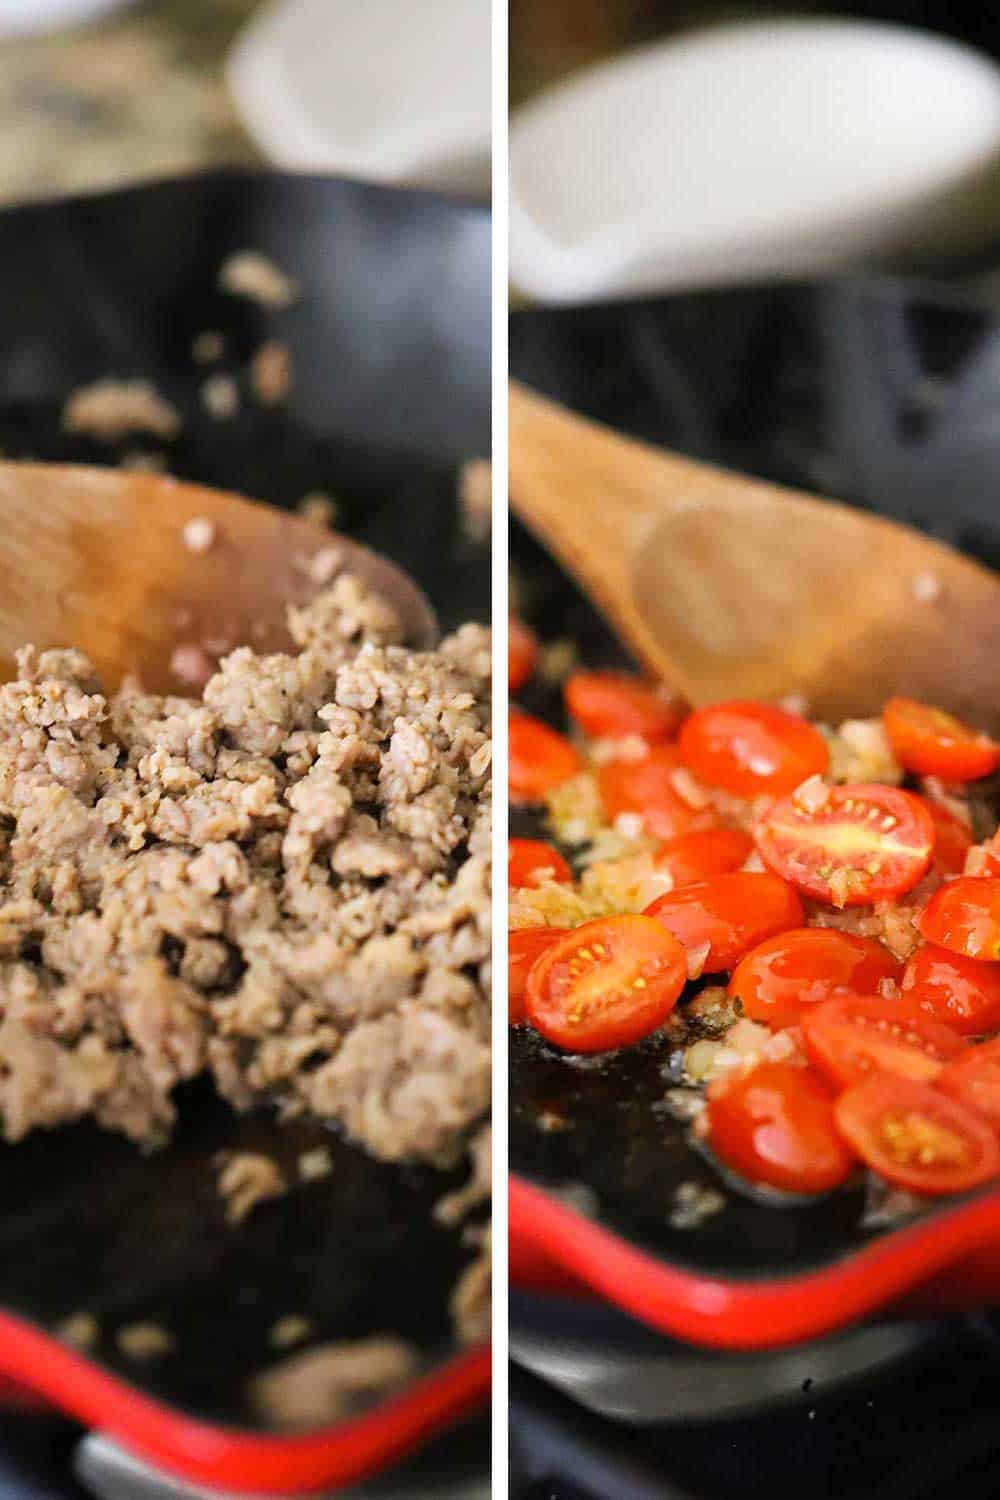 Italian sausage being sautéd in a skillet and then shallots and grape tomatoes being sautéd in the same skillet.